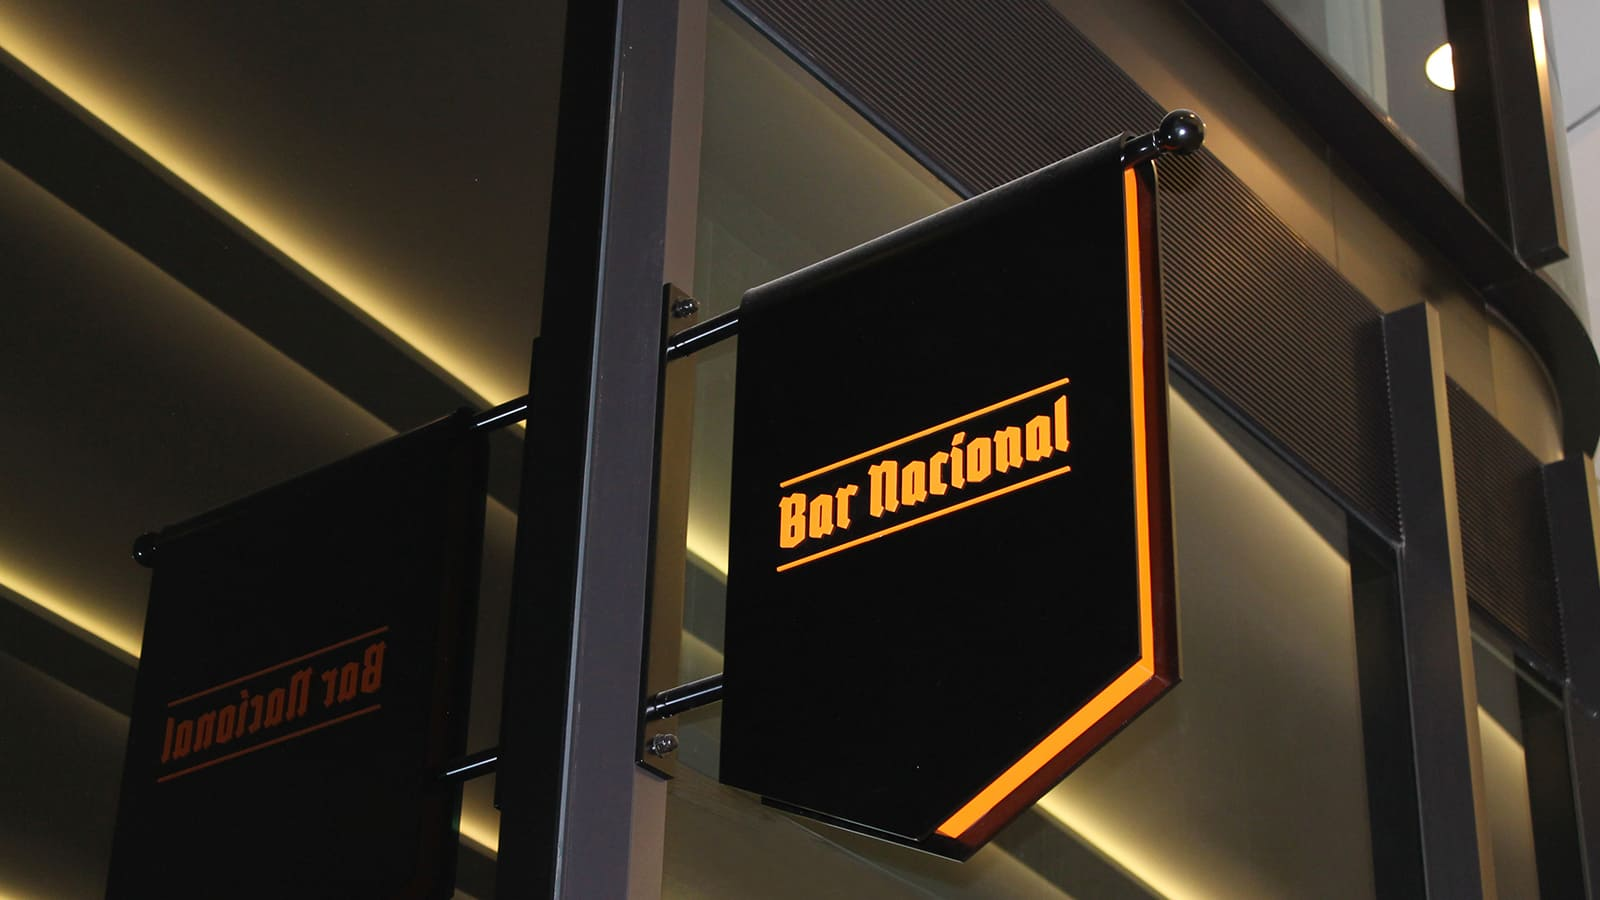 light-box-bar-nacional